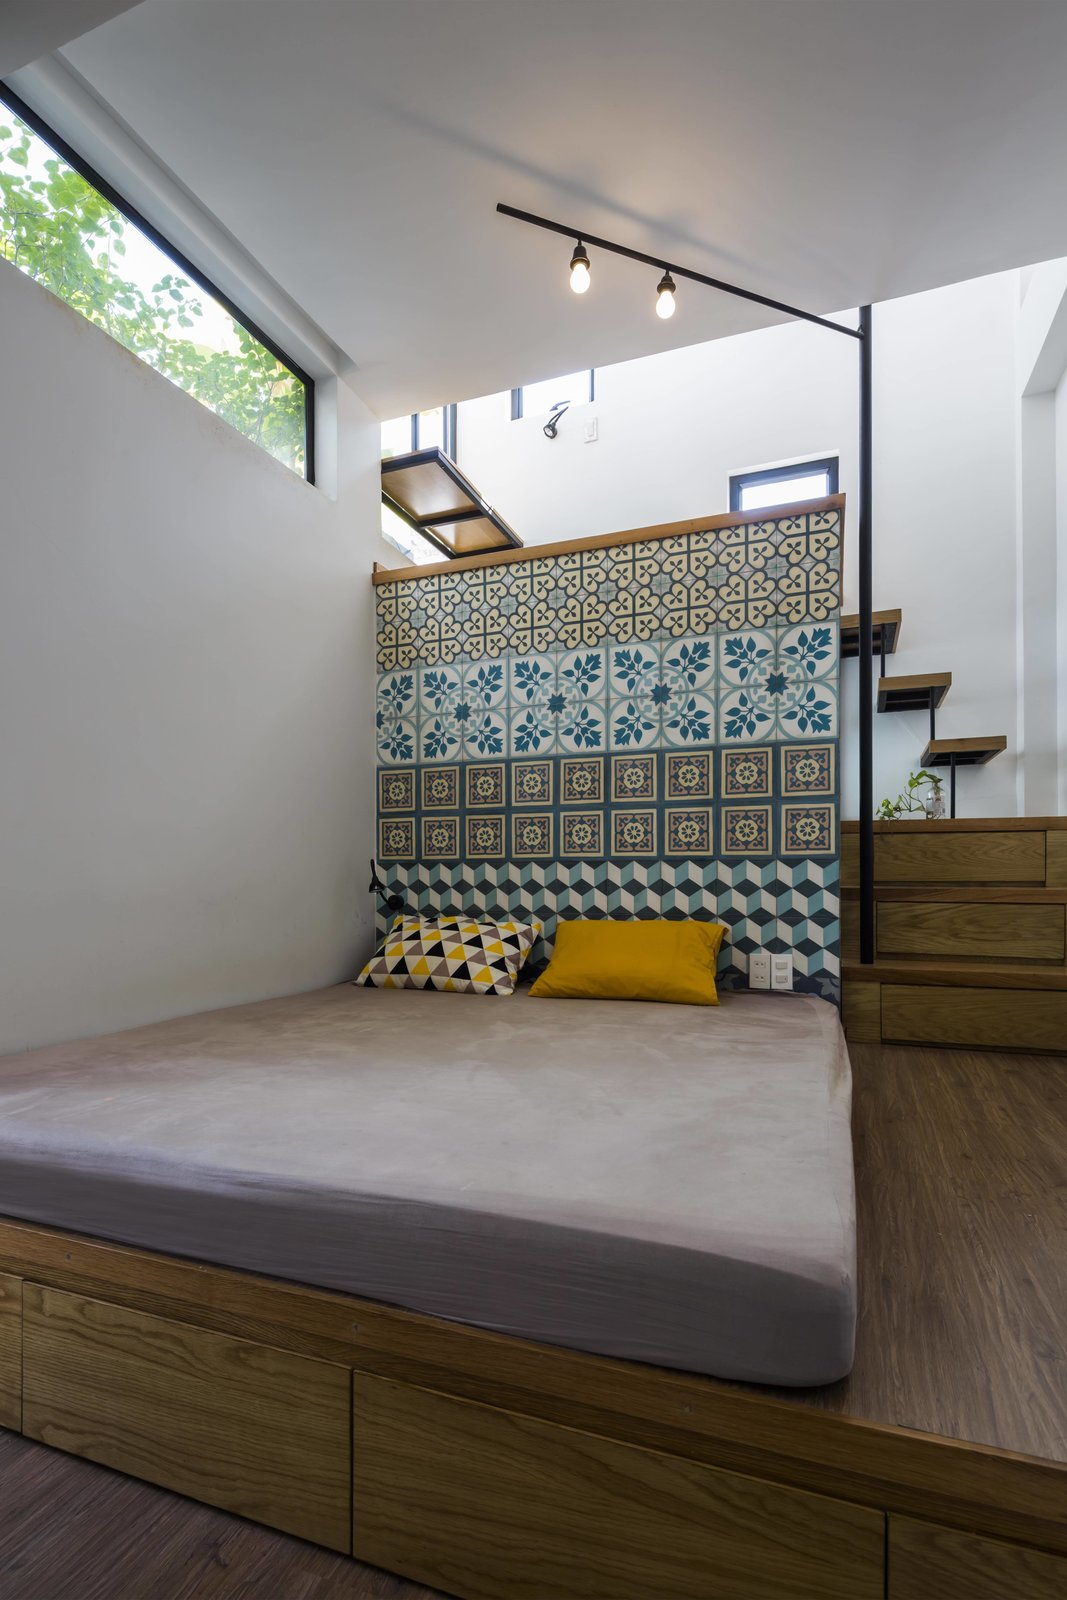 Bedroom, Bed, Floor, and Medium Hardwood  Best Bedroom Medium Hardwood Floor Photos from See How This Compact Home in Vietnam Makes the Most of 194 Square Feet